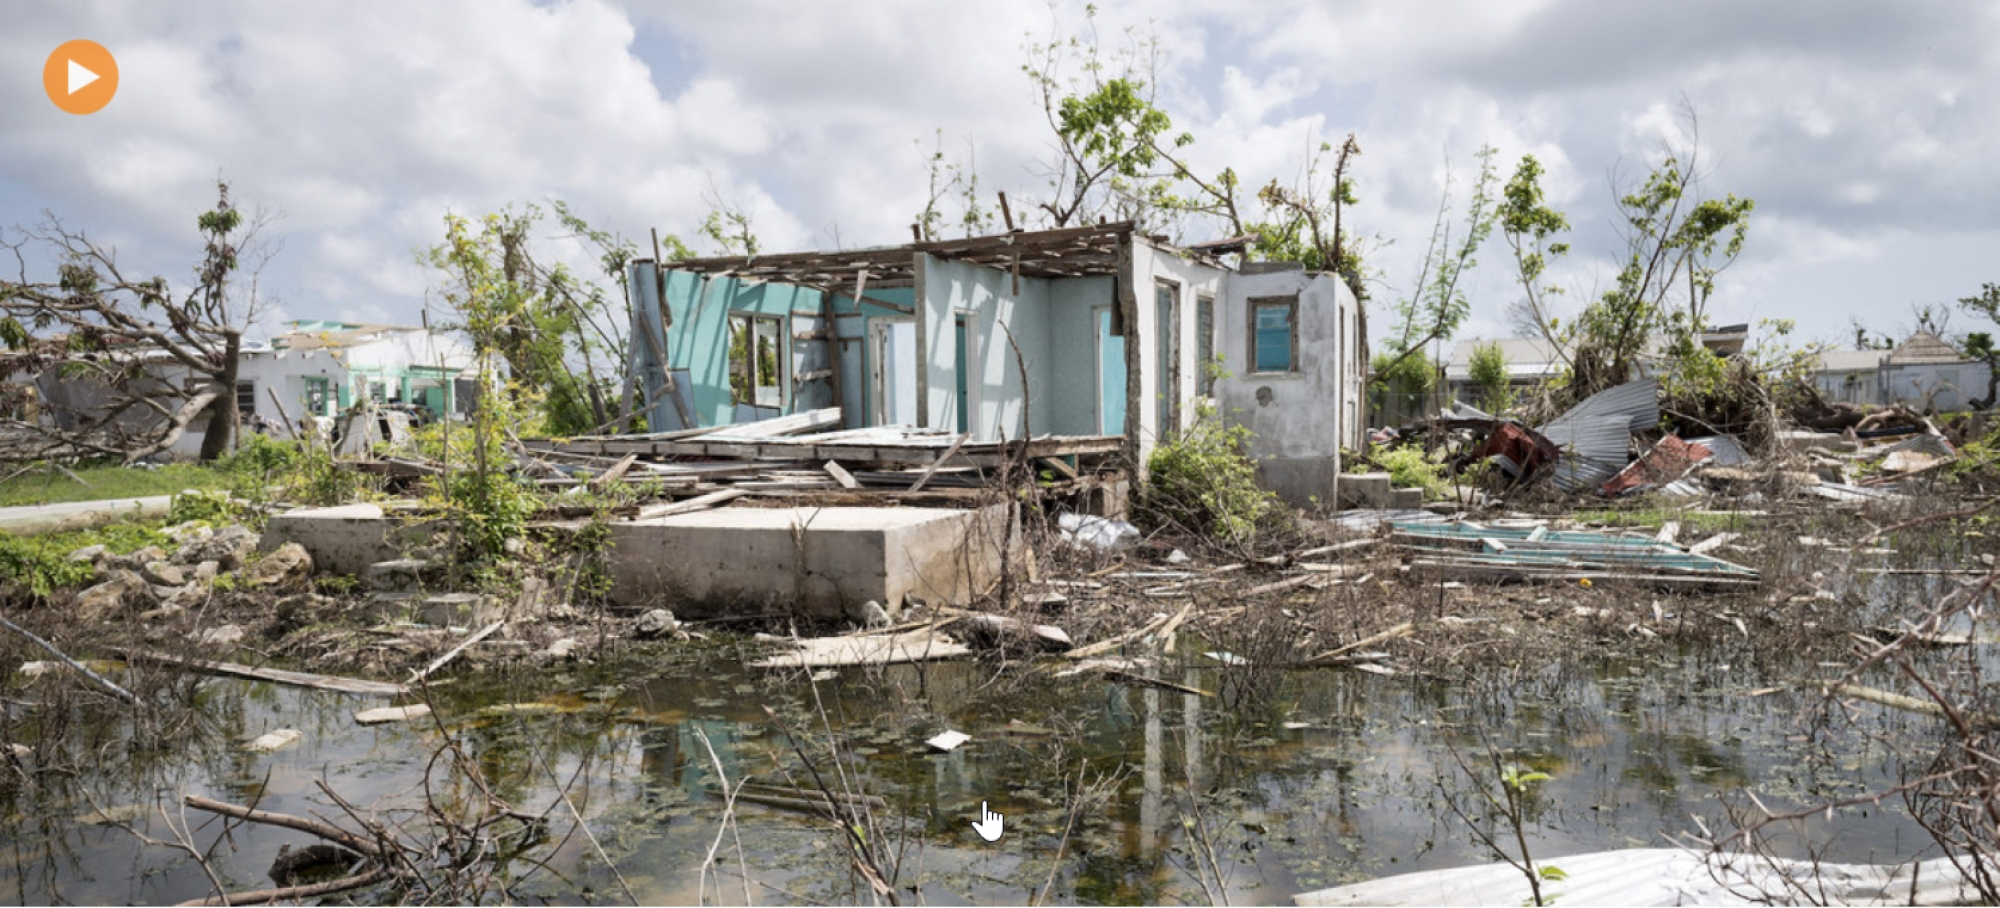 A scene of devastation in the wake of Hurricane Irma, which struck Antigua and Barbuda in the Caribbean region in 2017.